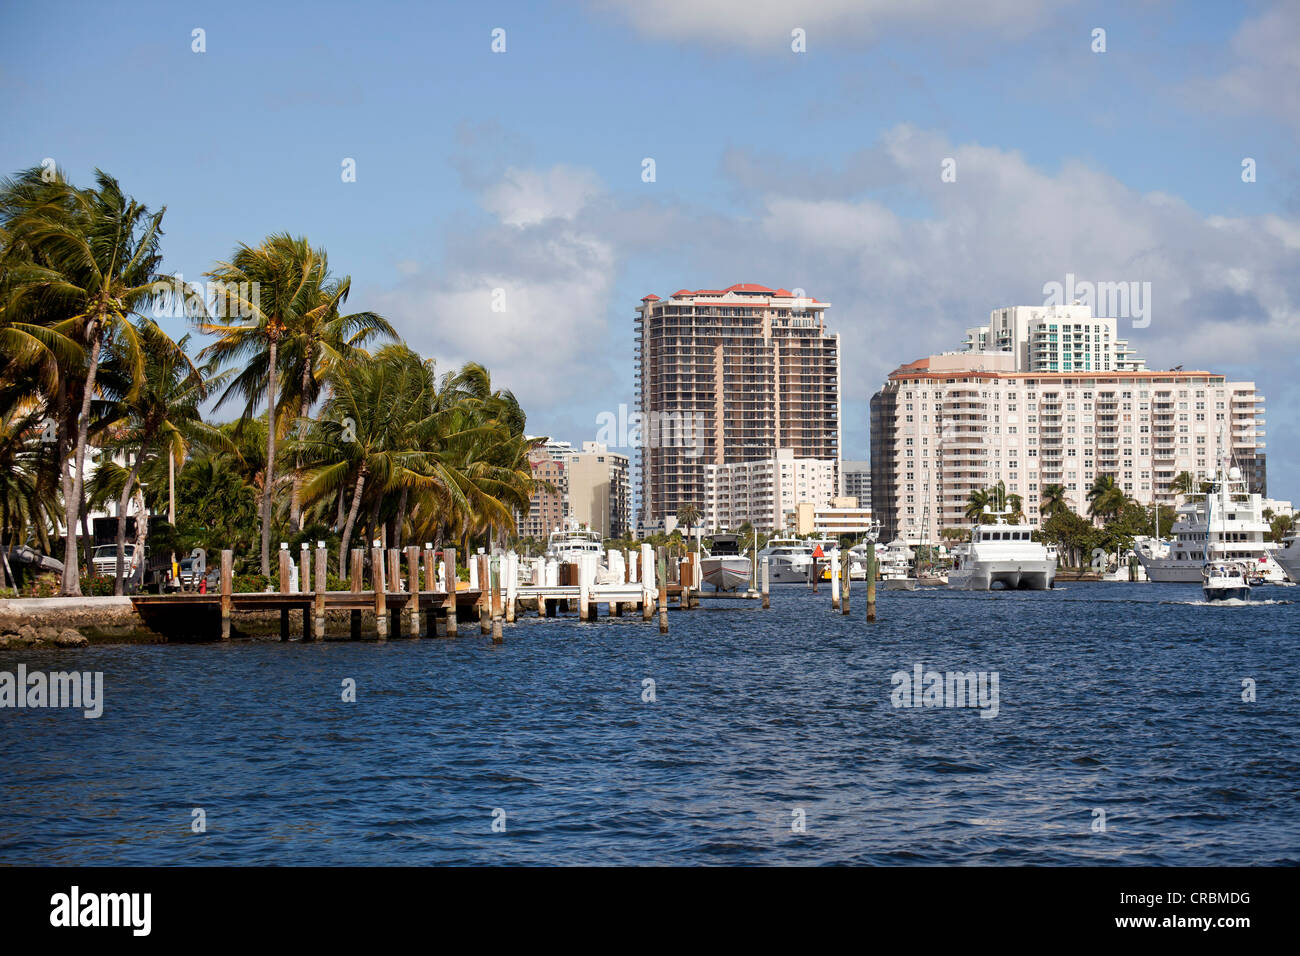 Skyscrapers, yachts and canals in the town centre of Fort Lauderdale, Broward County, Florida, USA - Stock Image